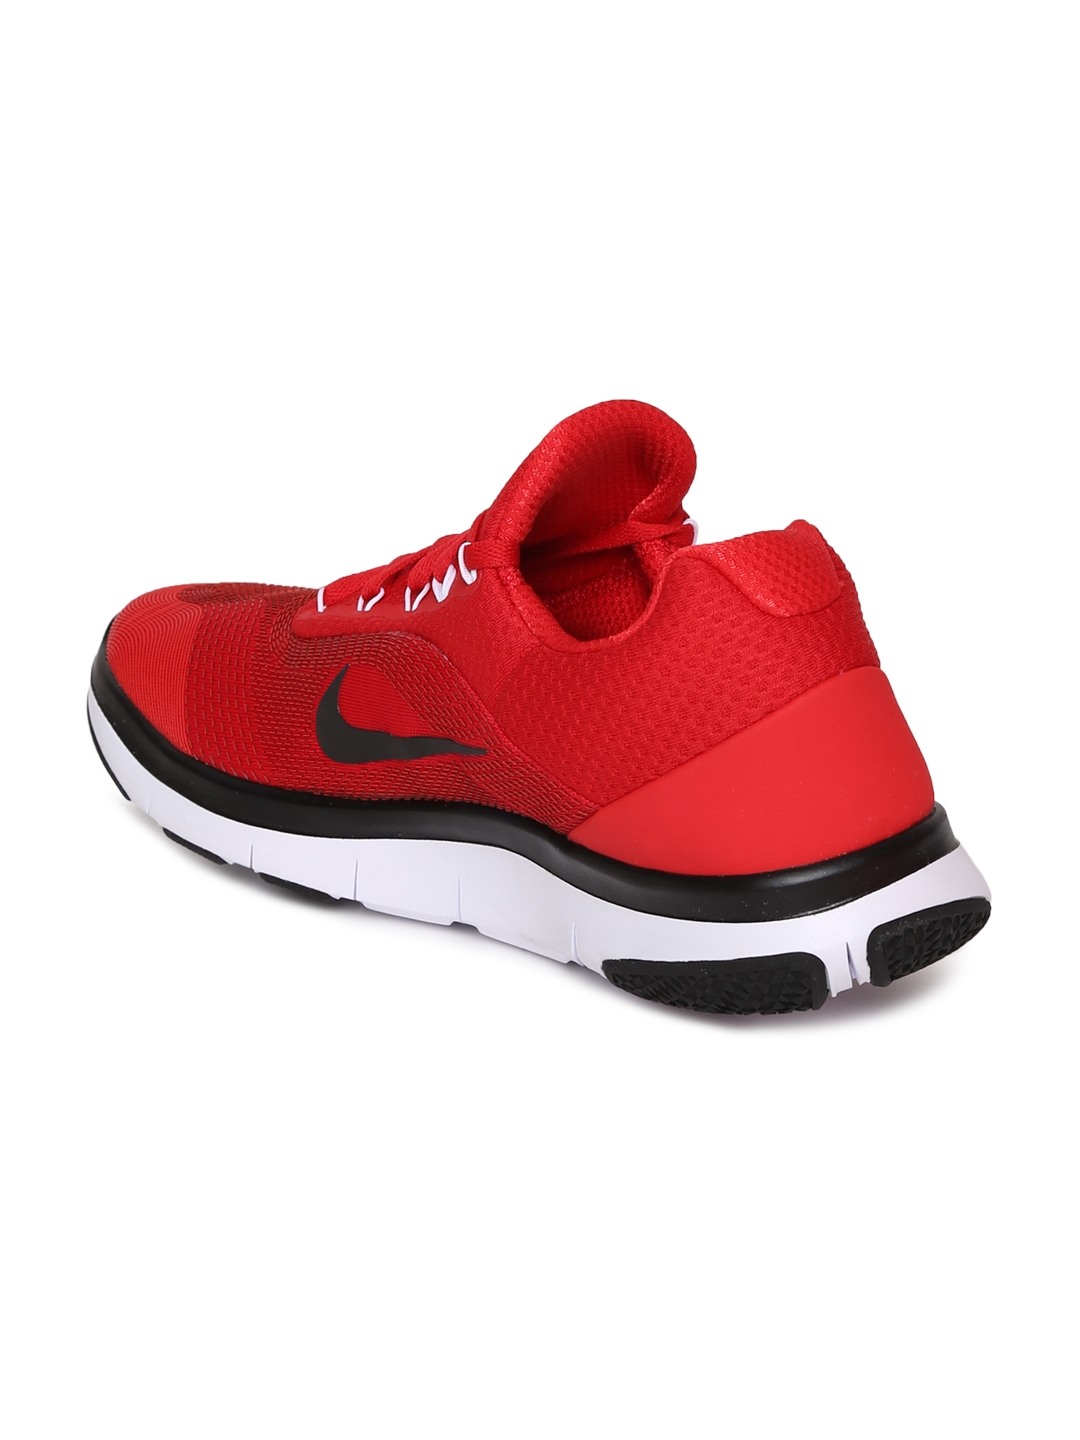 767b5fae07173 Buy Nike Men Red FREE TRAINER V7 Training Shoes - Sports Shoes for ...